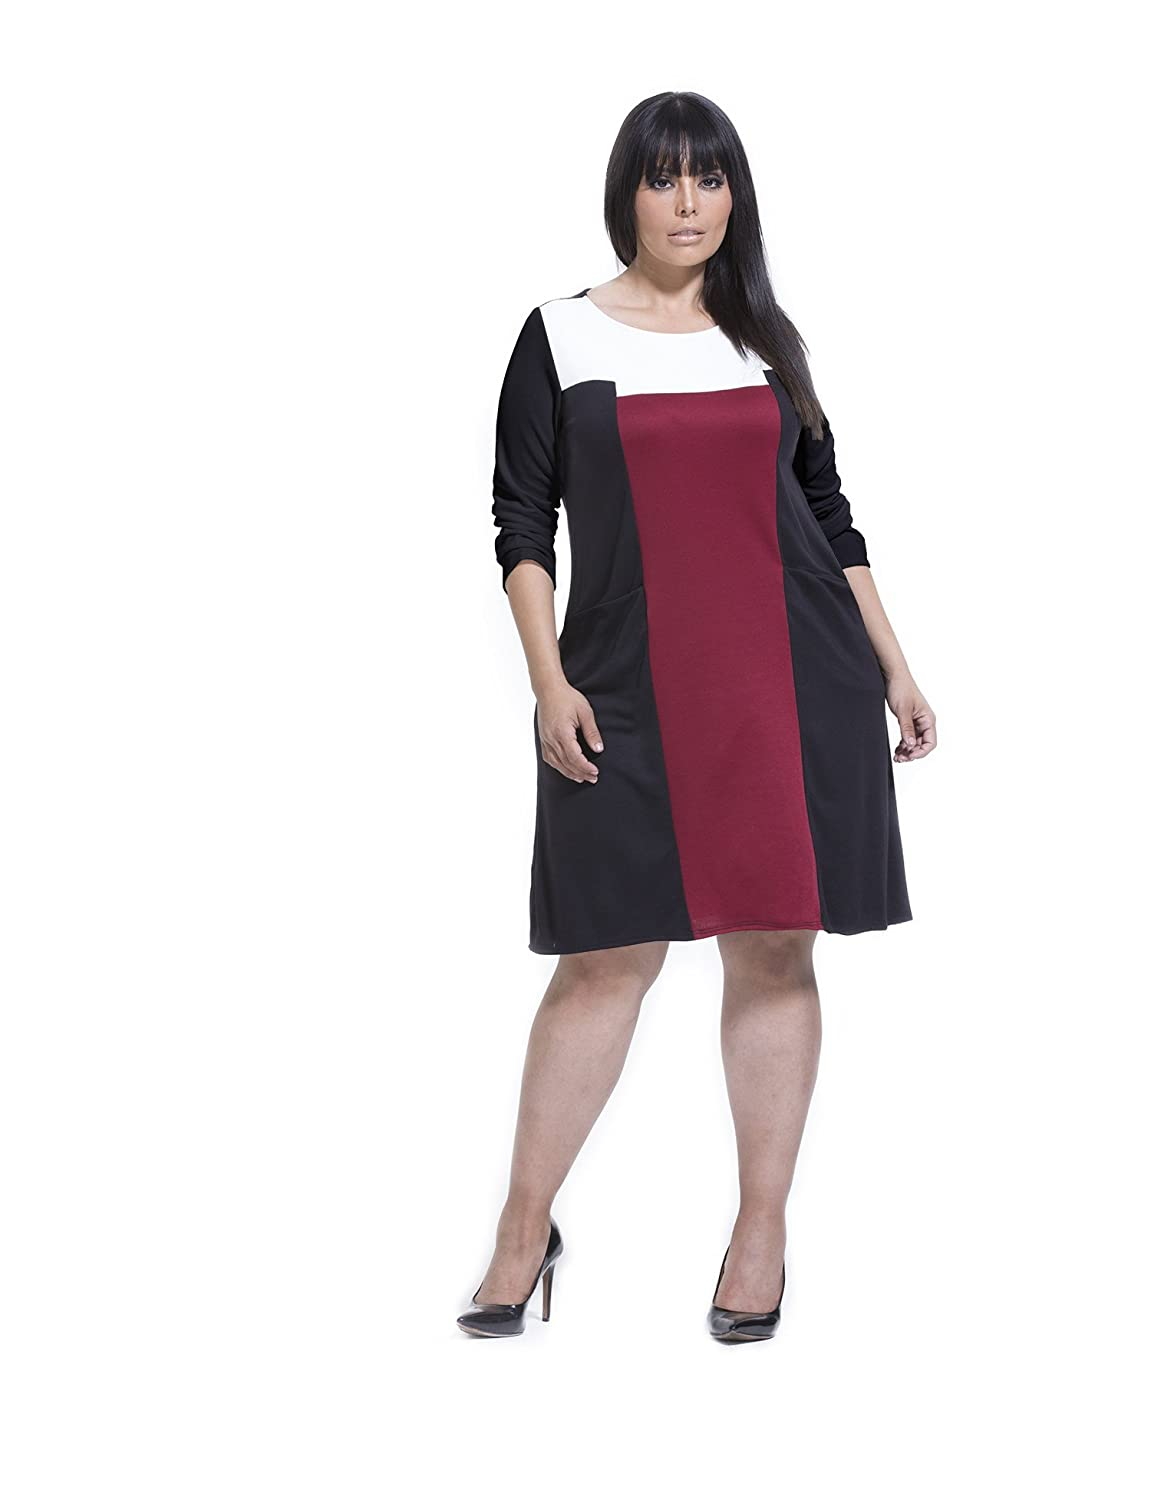 Plus Size Retro Dresses KARI LYN Womens Plus Size Carly Colorblock Dress $69.00 AT vintagedancer.com